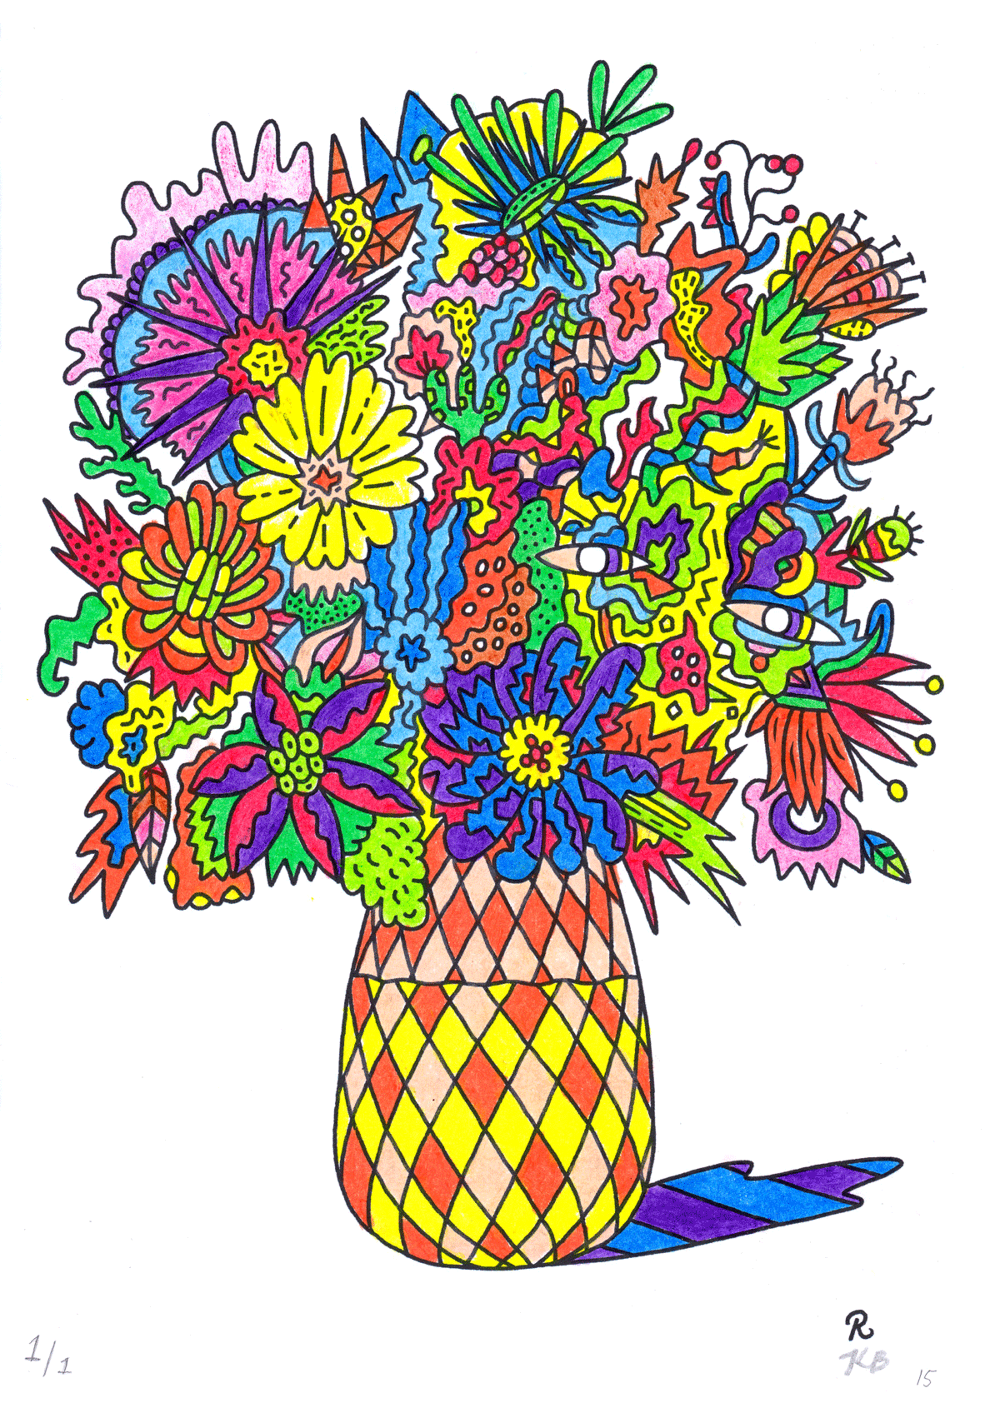 The coloring book for grown ups - The Artwork A Seduction Of Flowers Is A Digital Drawing Created For A Colouring Book And Exhibition Entitled Colouring Book For Grown Ups With A South